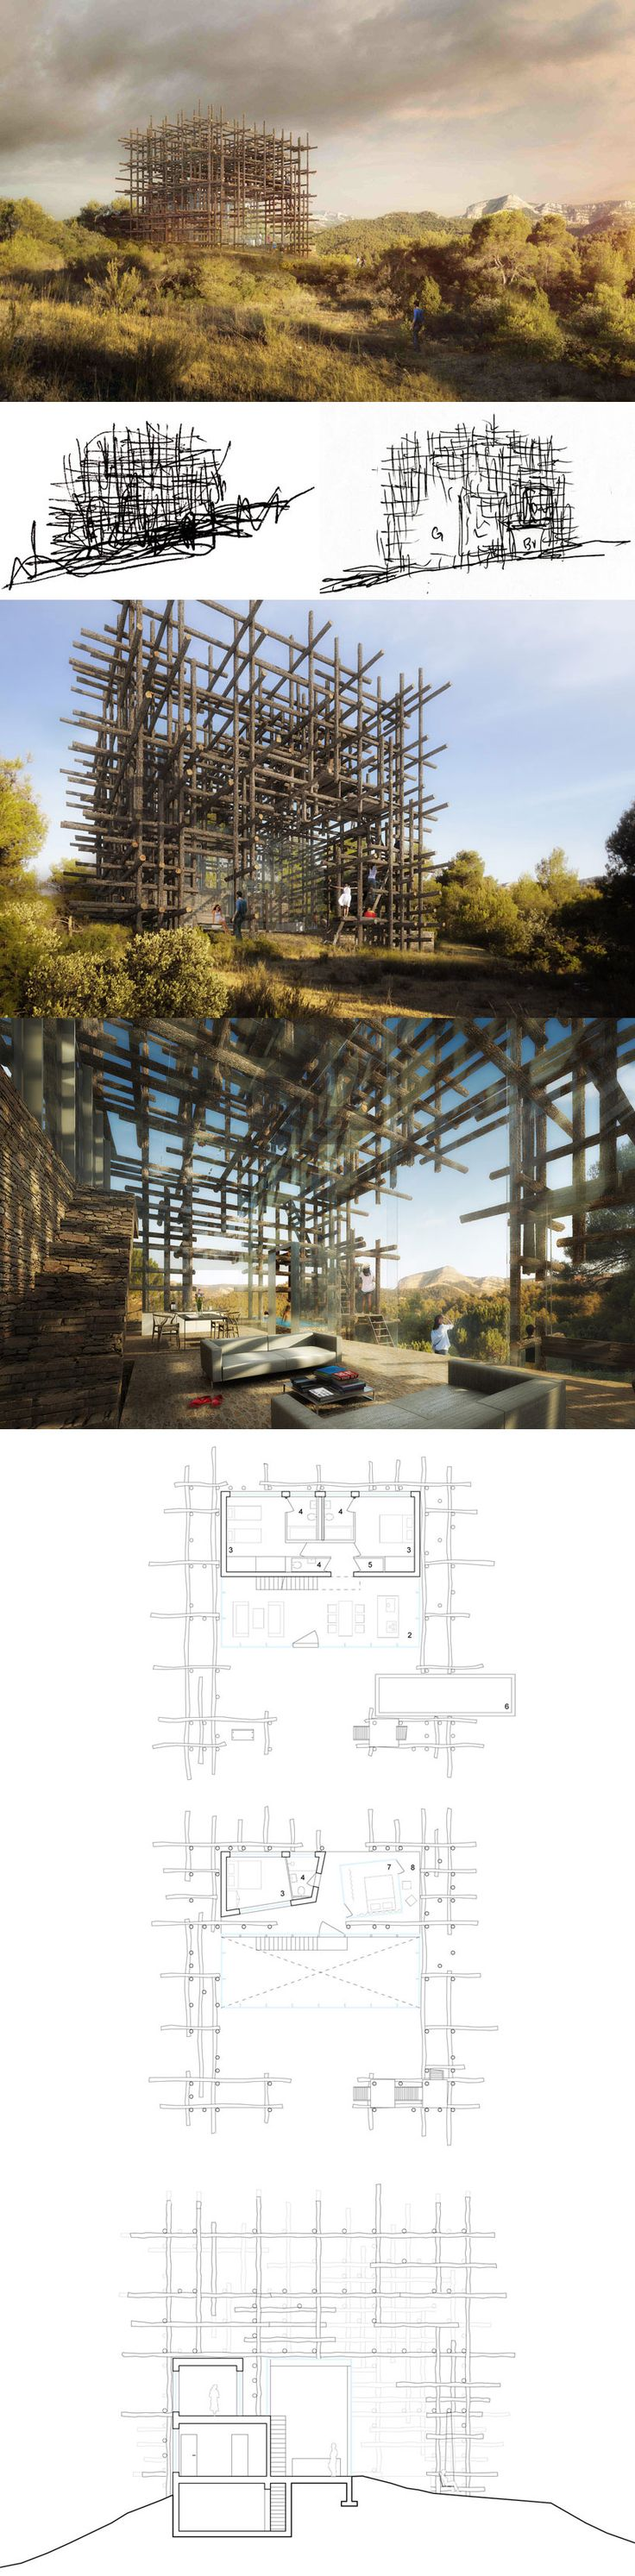 Sou Fujimoto, Geometric Forest Solo House, 2013, a glass and stone structure surrounded by a lattice of tree trunks, Cretas, Spain.